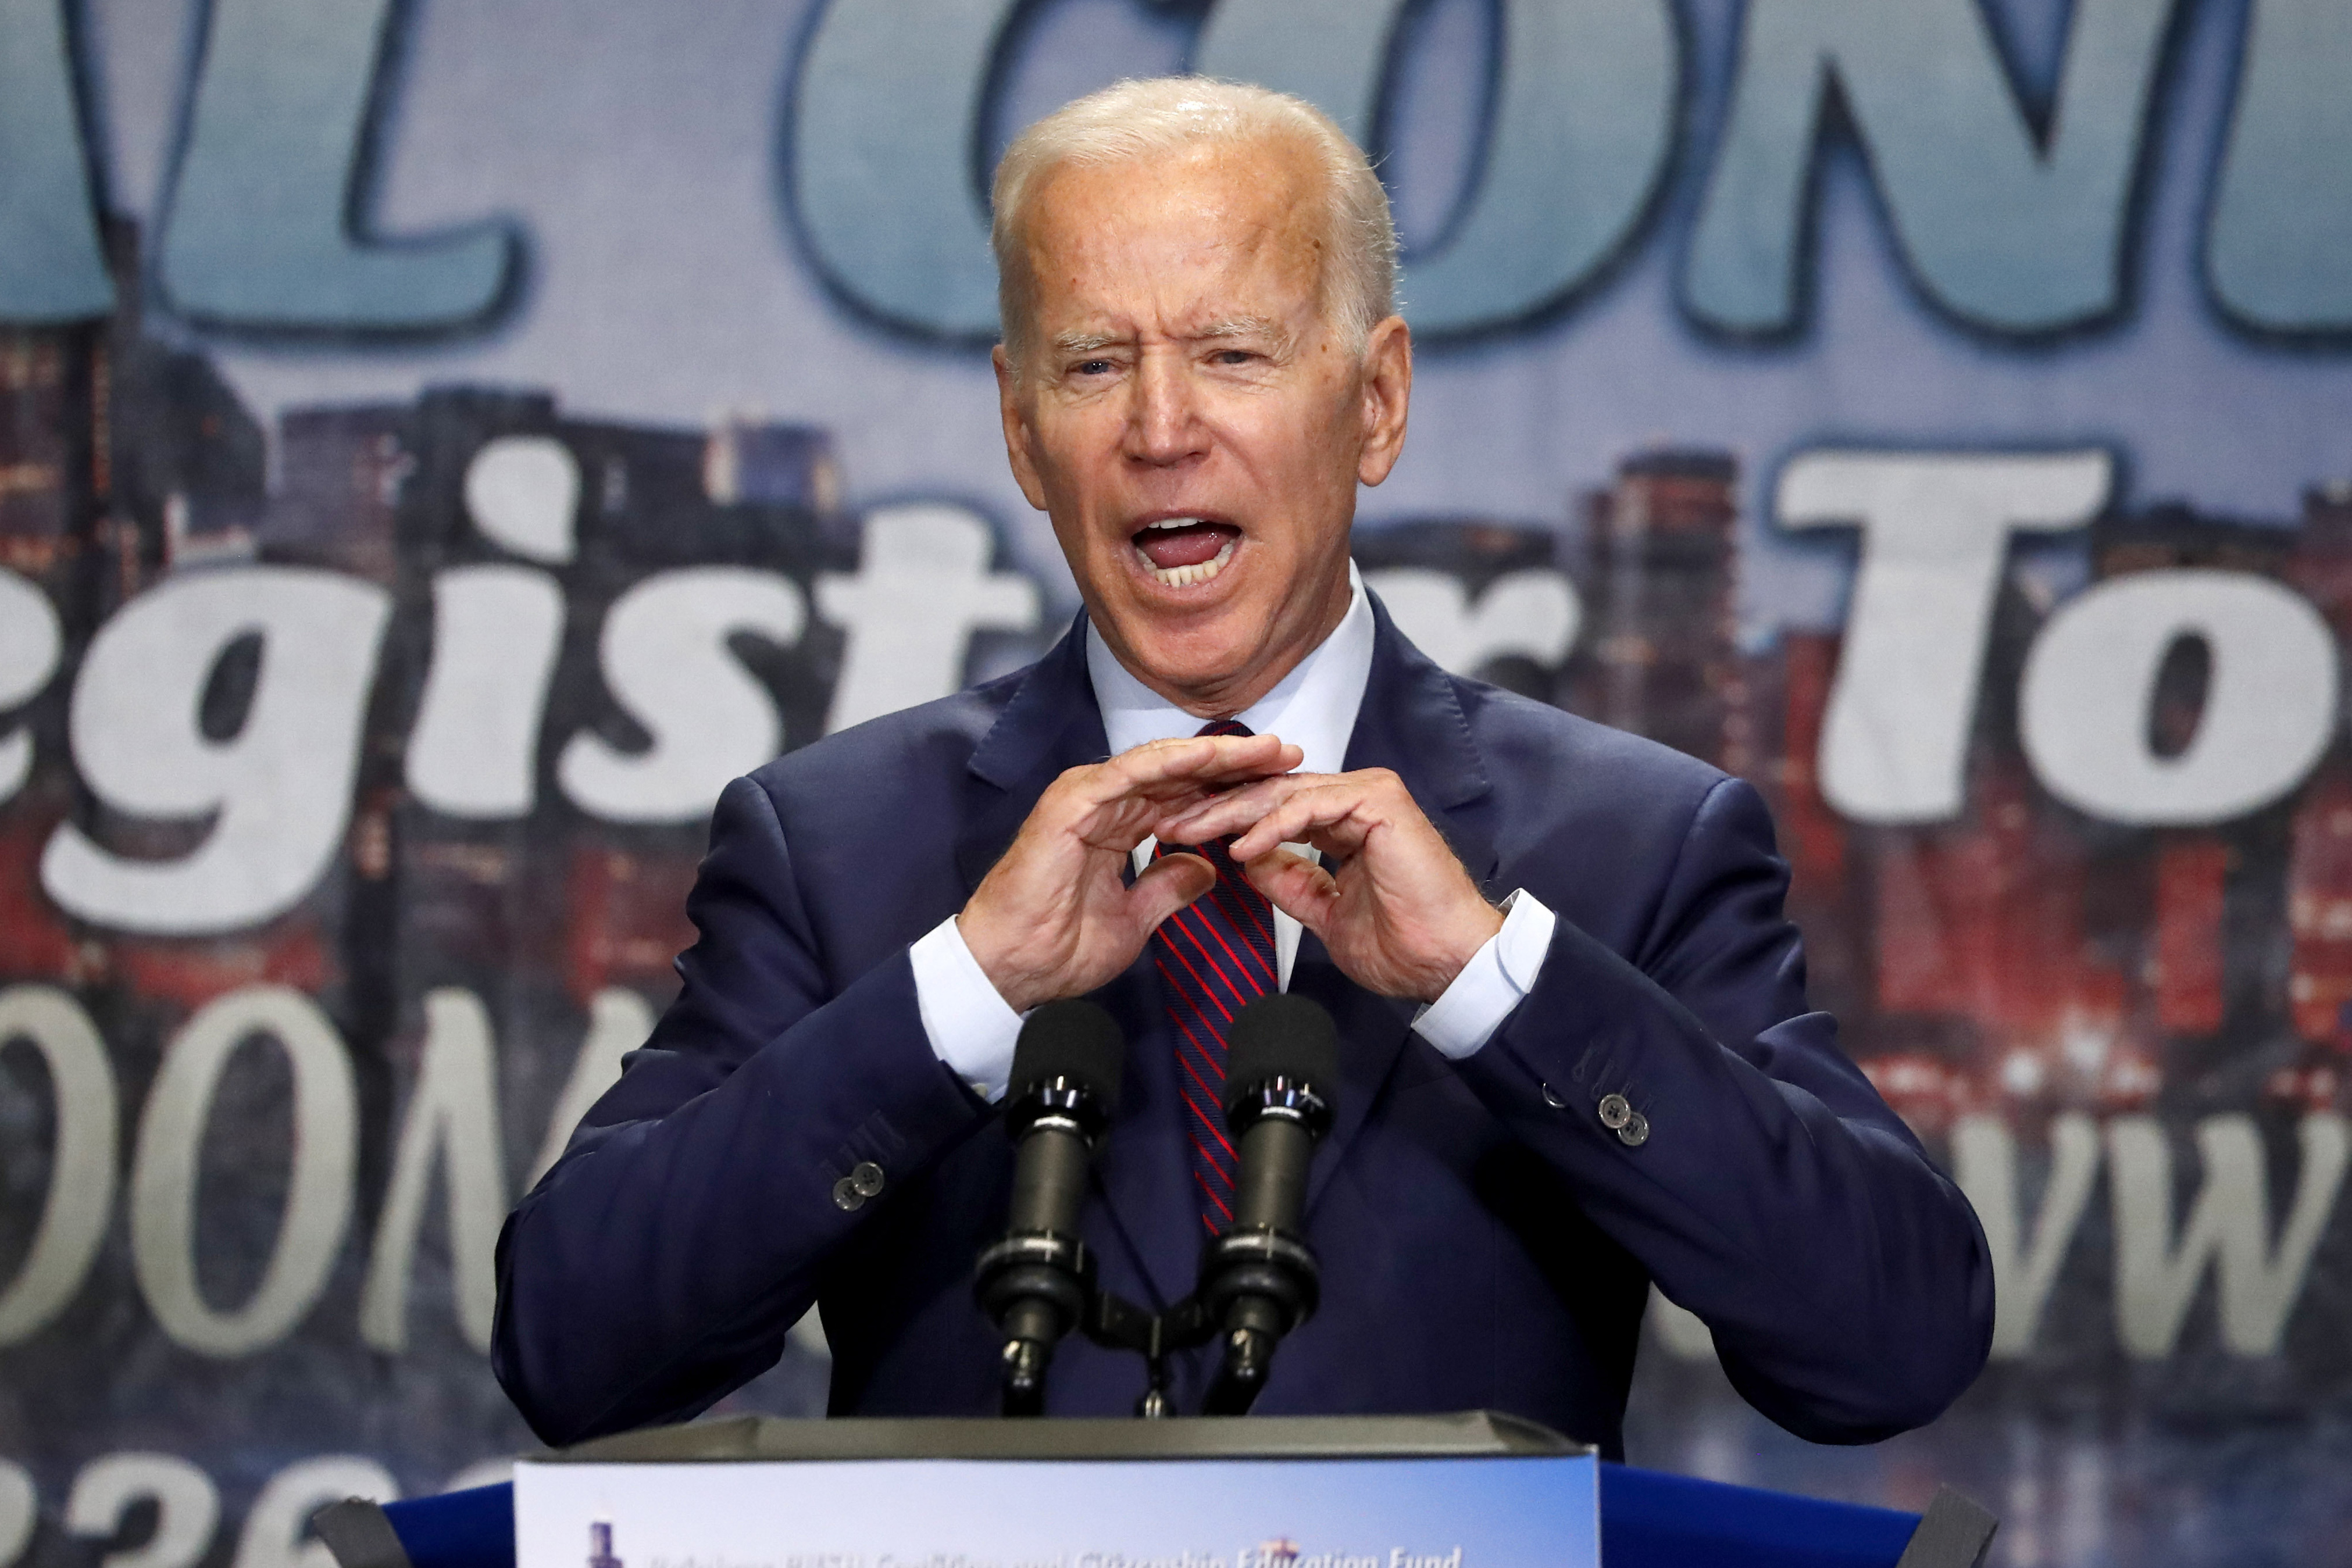 Biden defends past civil rights record after Harris attack